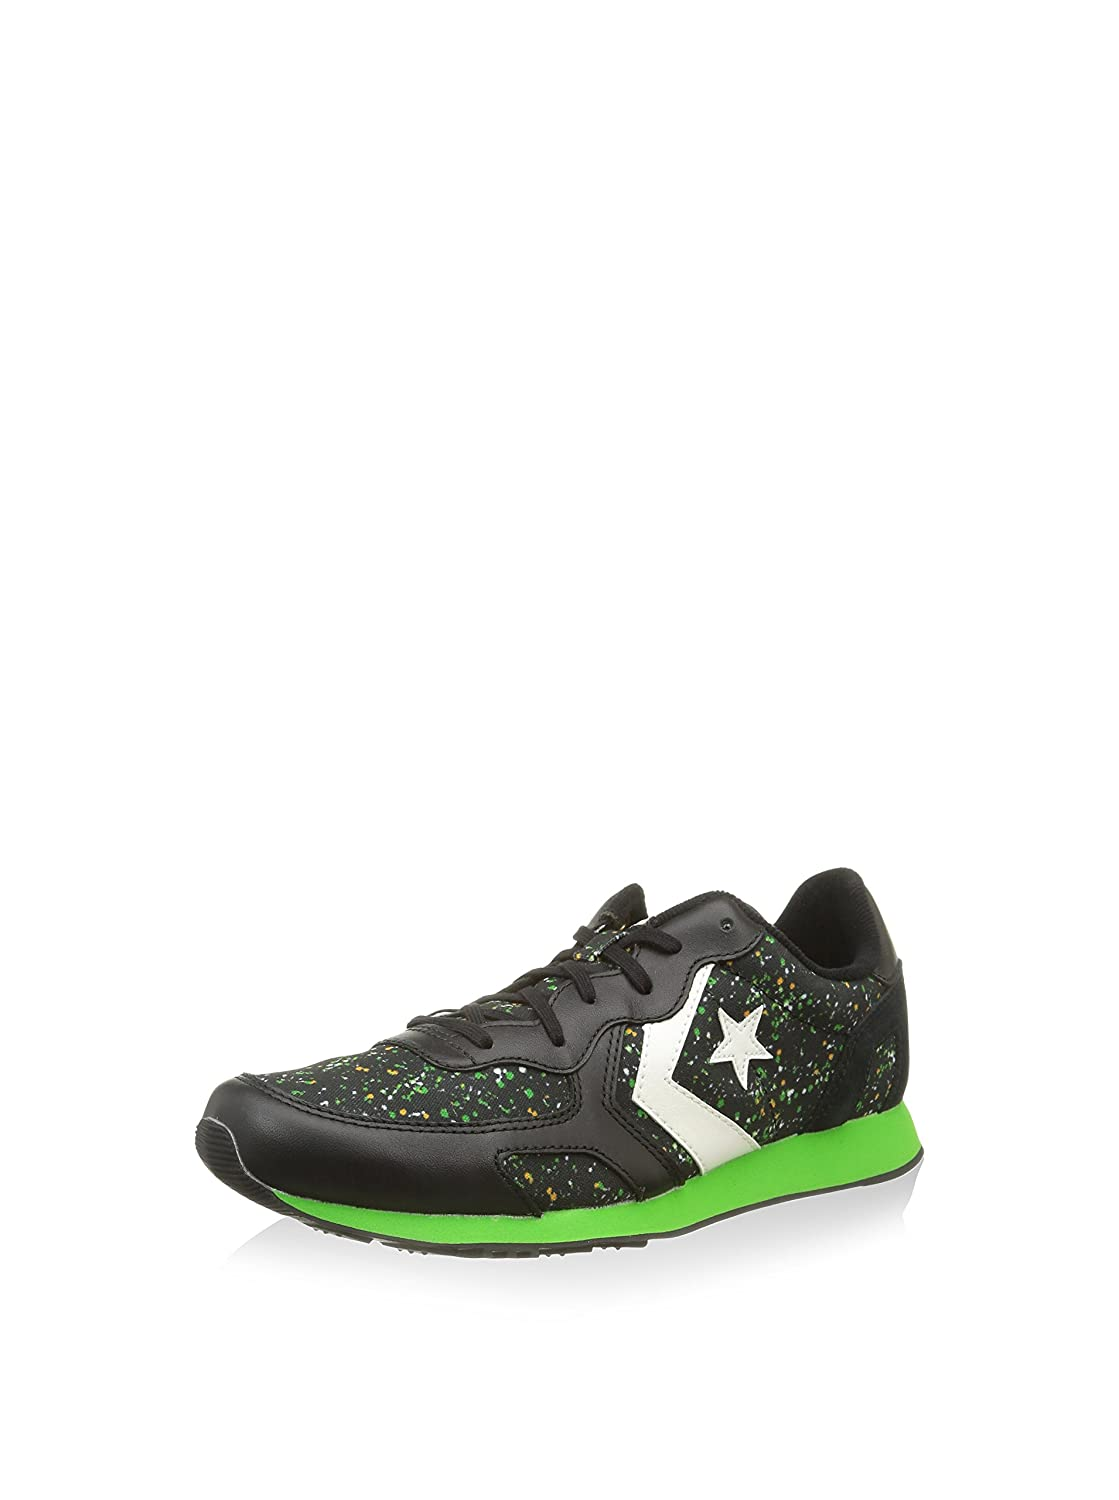 Converse Turnschuhe Auckland Racer OX Can Can Can Suede Pr c193fe